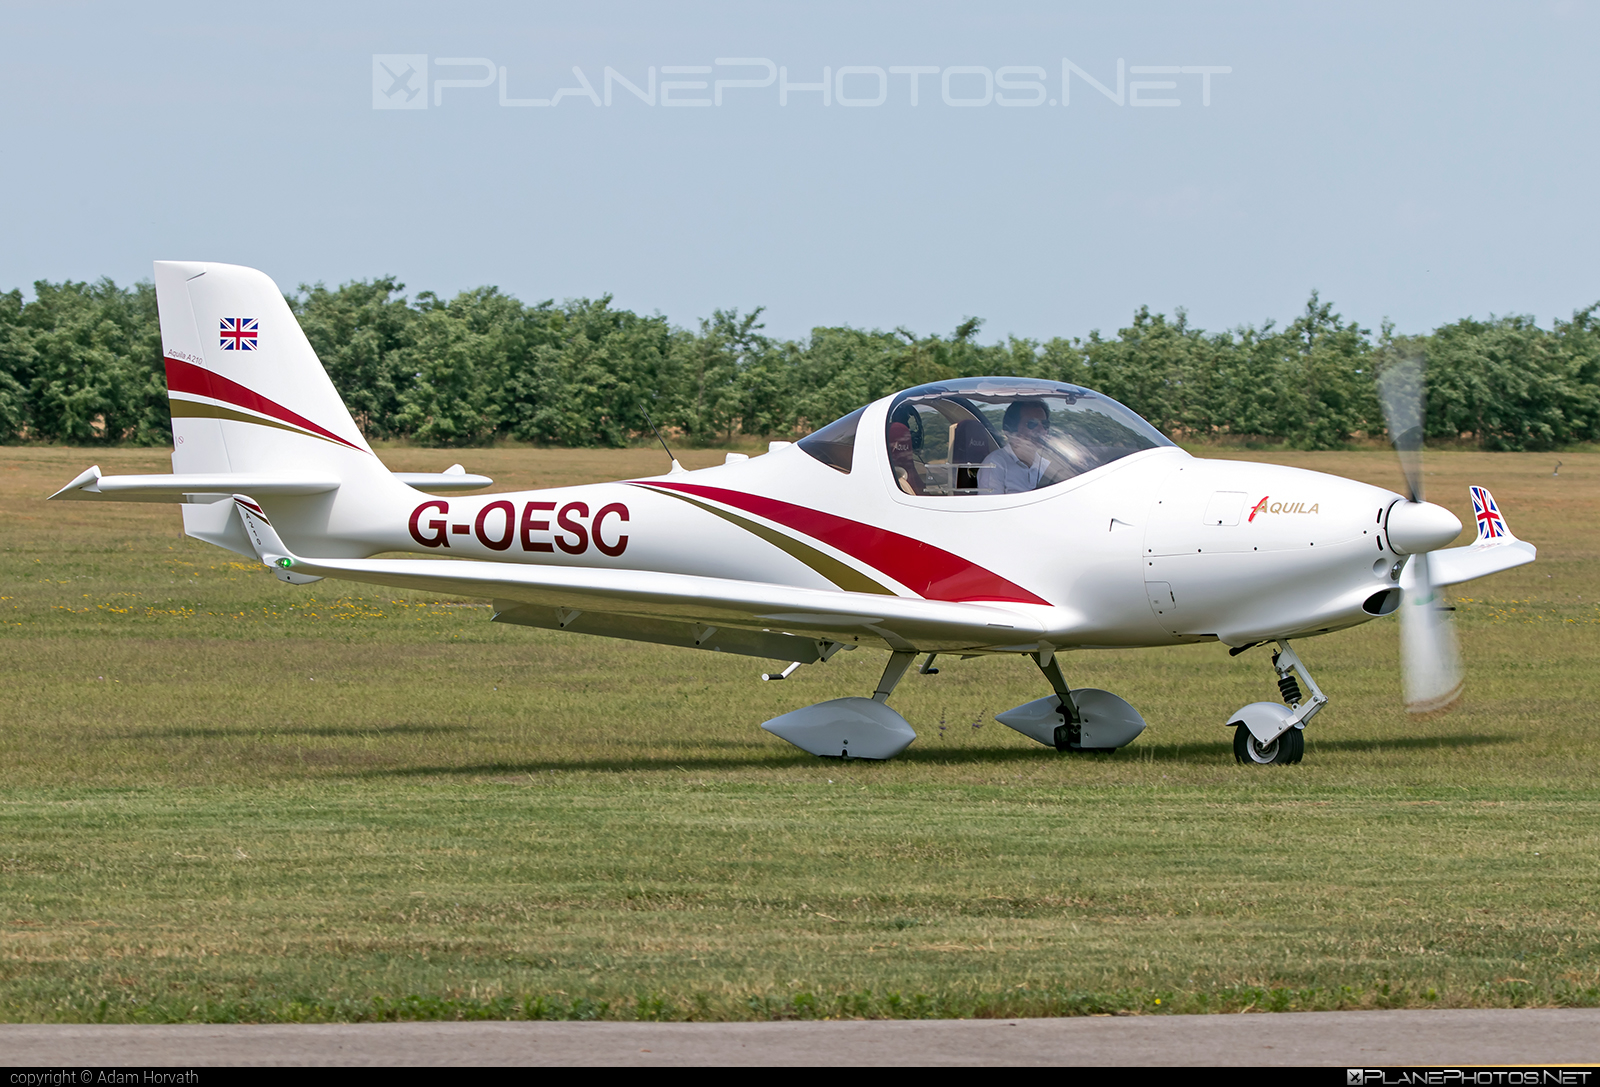 Aquila A210 - G-OESC operated by Private operator #aquila #aquila210 #aquilaa210 #aquilaaircraft